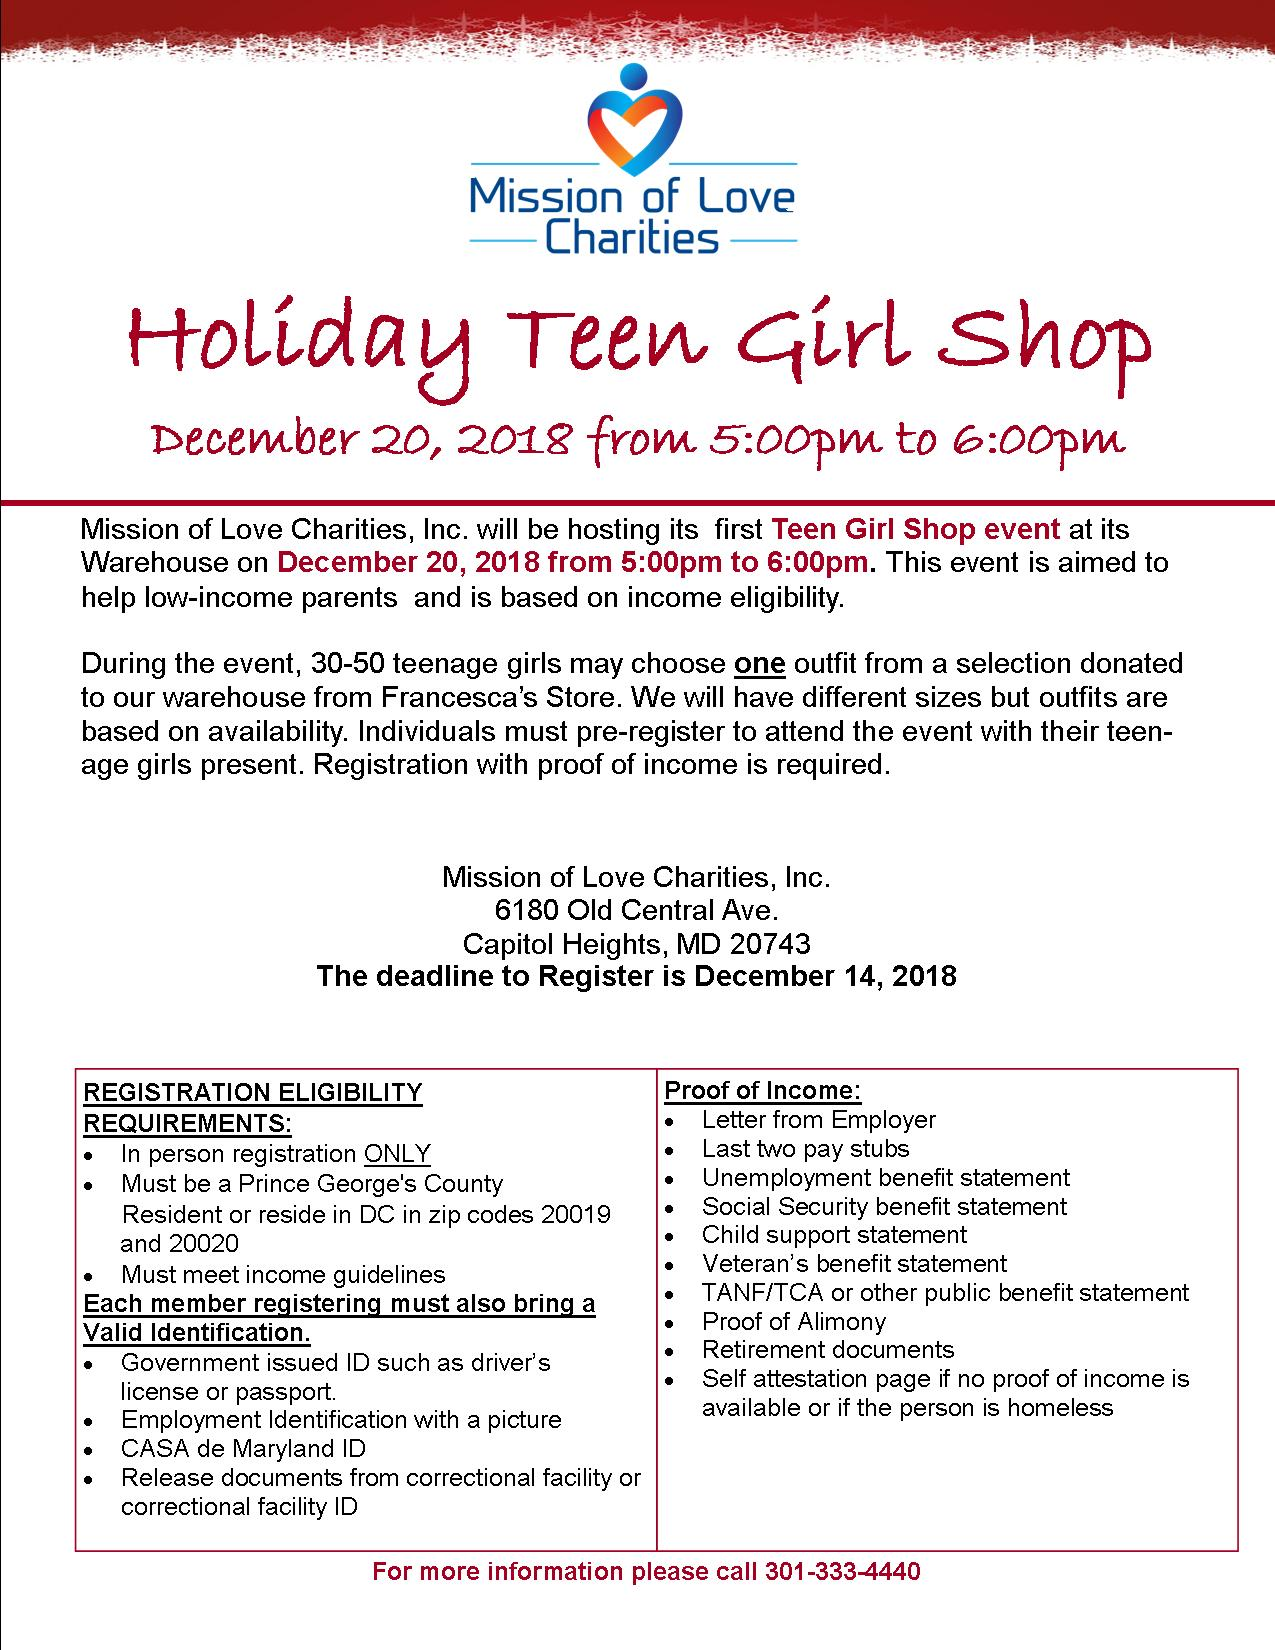 Holiday Teen Girl Shop December 21, 2018.jpg